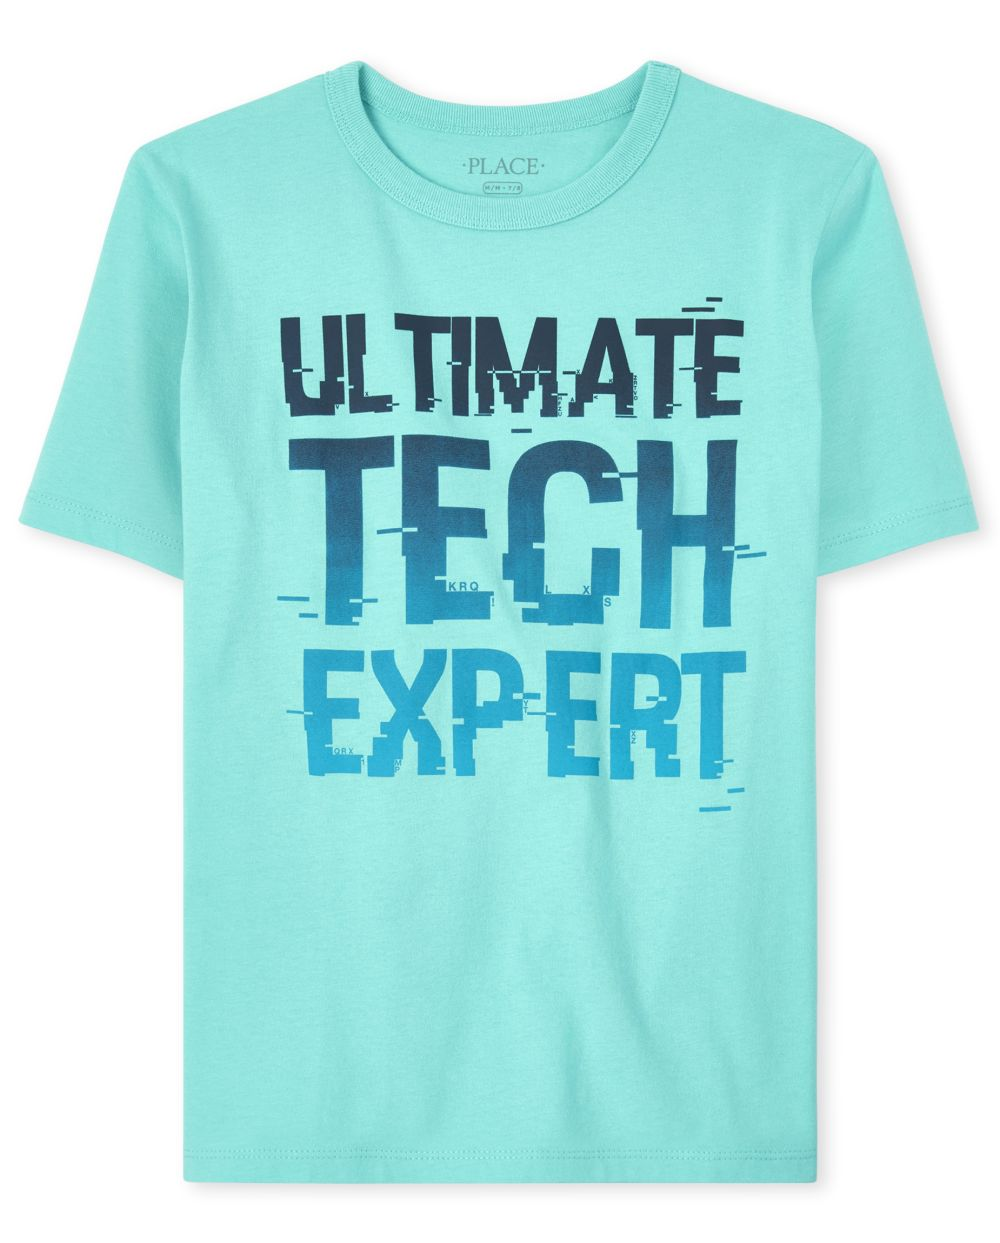 Boys Tech Expert Graphic Tee